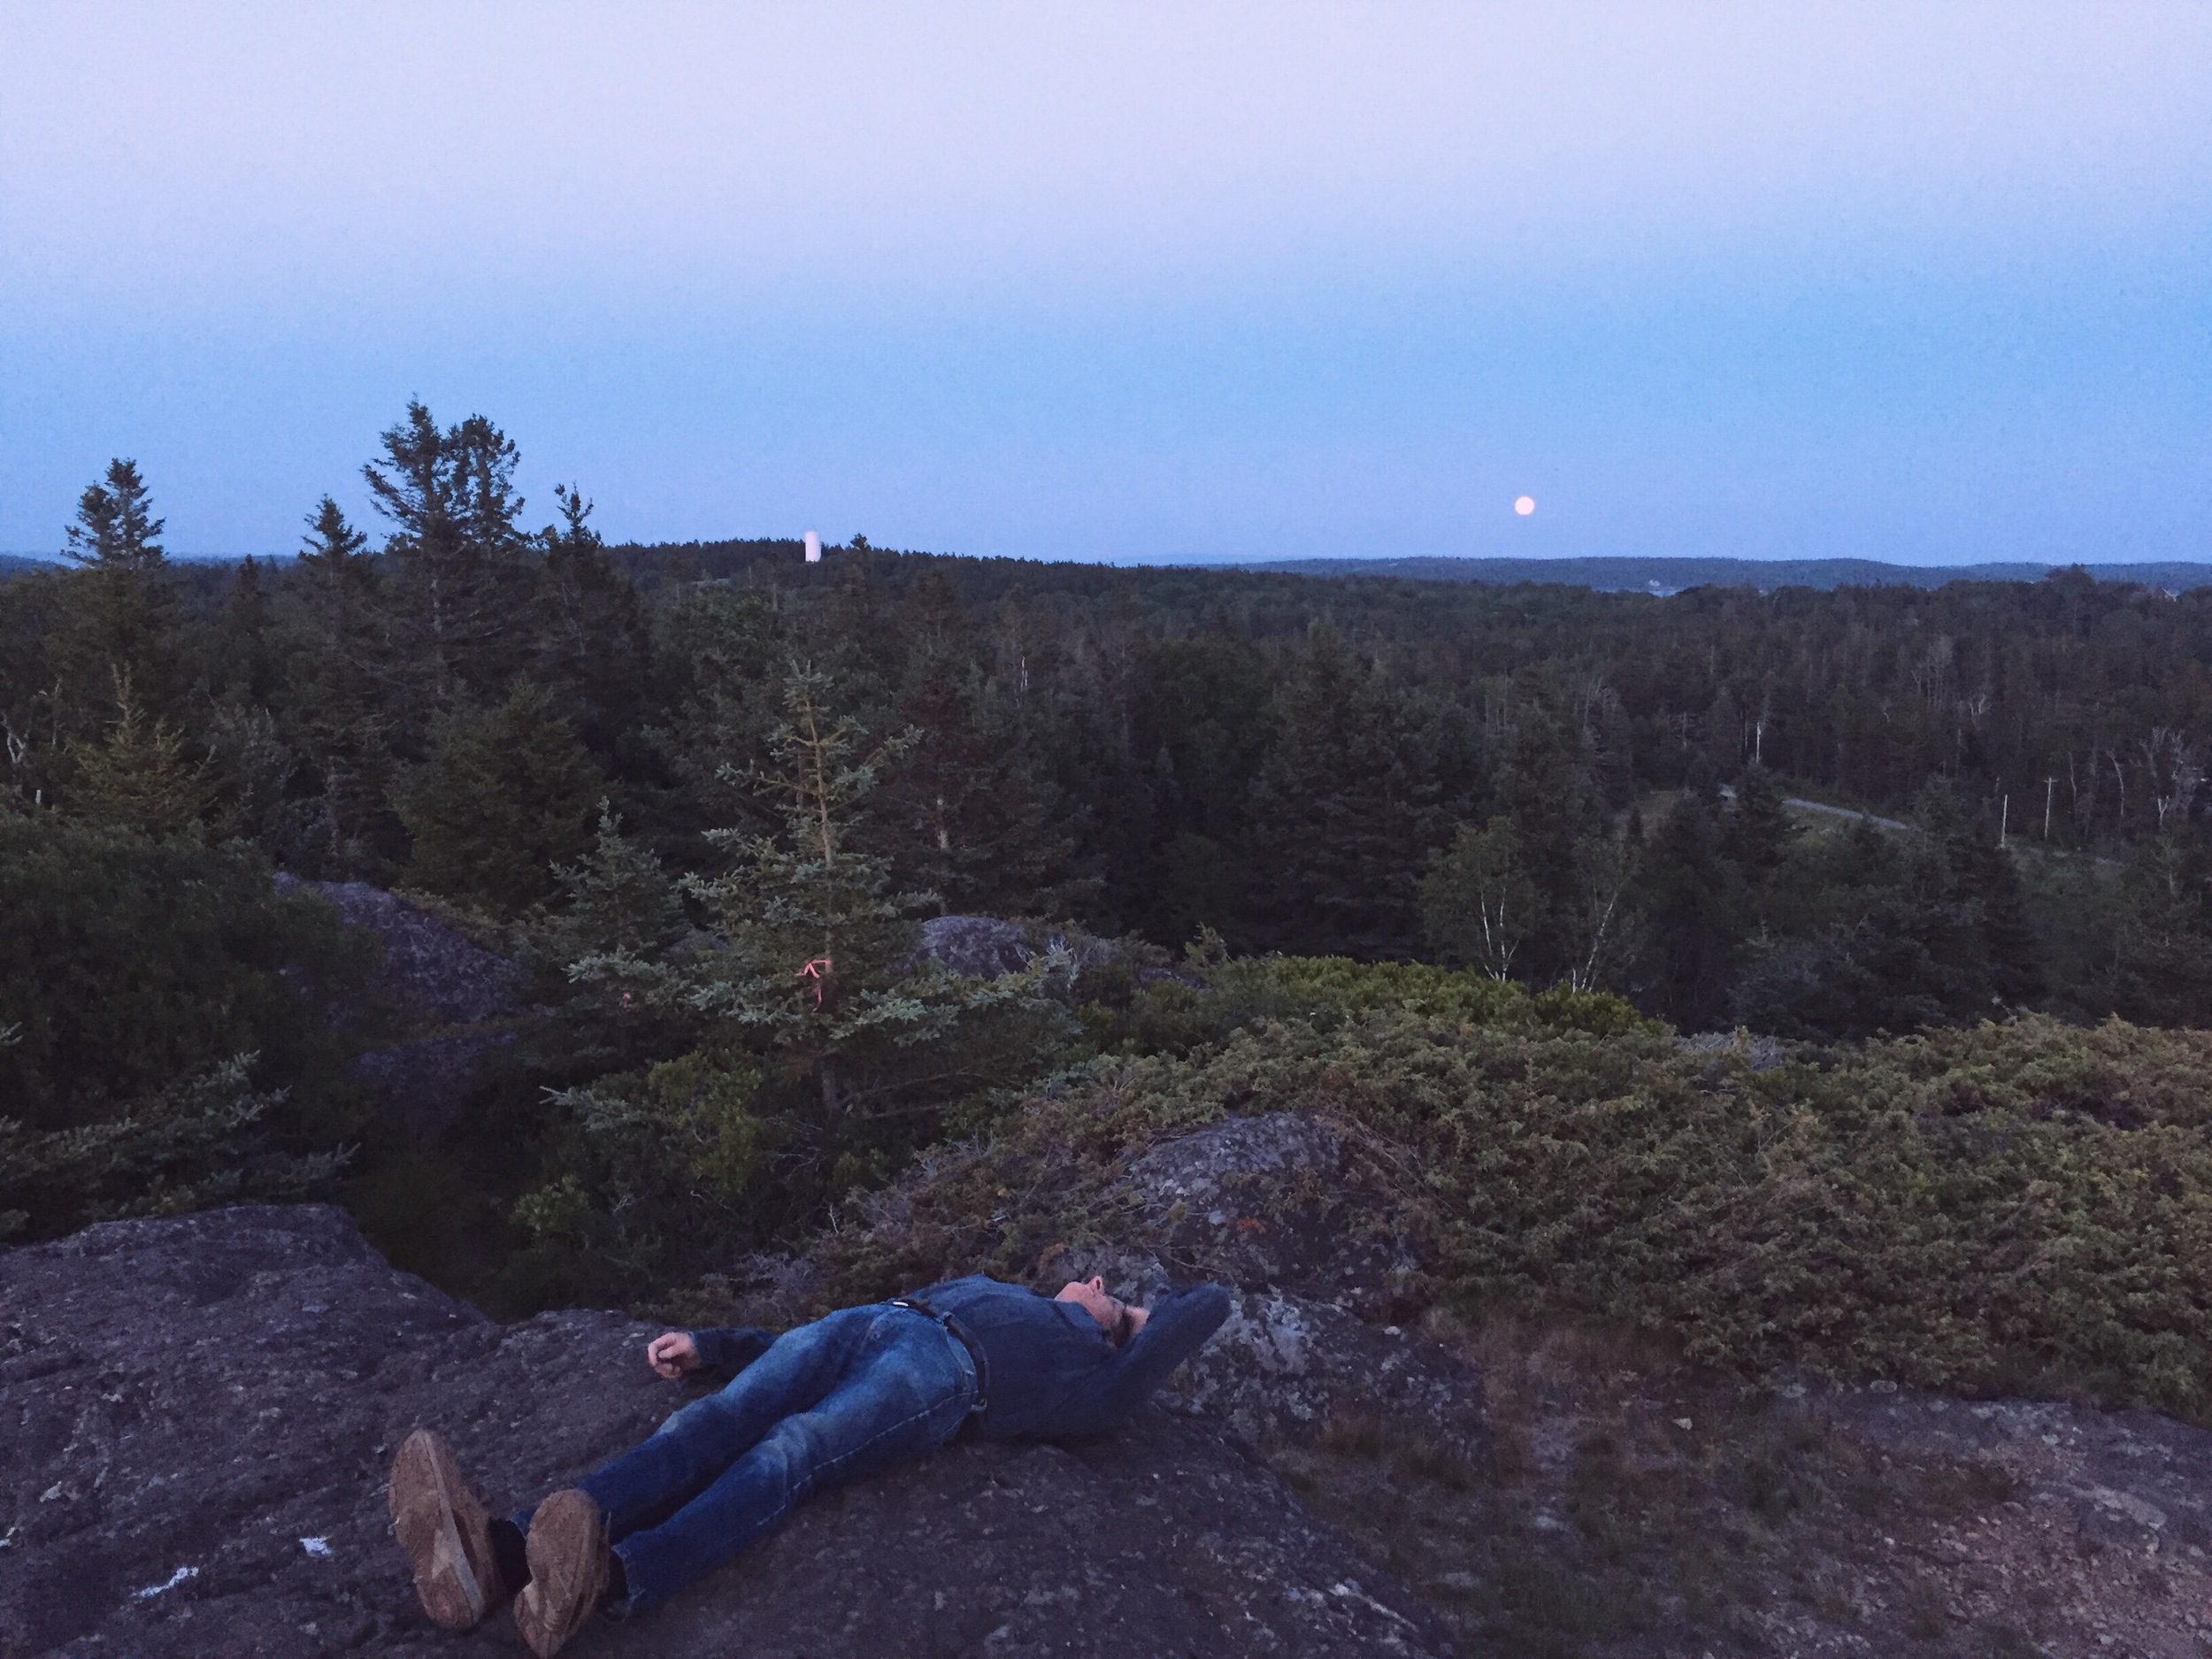 Local Eric Hopkins demonstrating how to feel like a spaceman while watching the strawberry moon rise on the solsctice